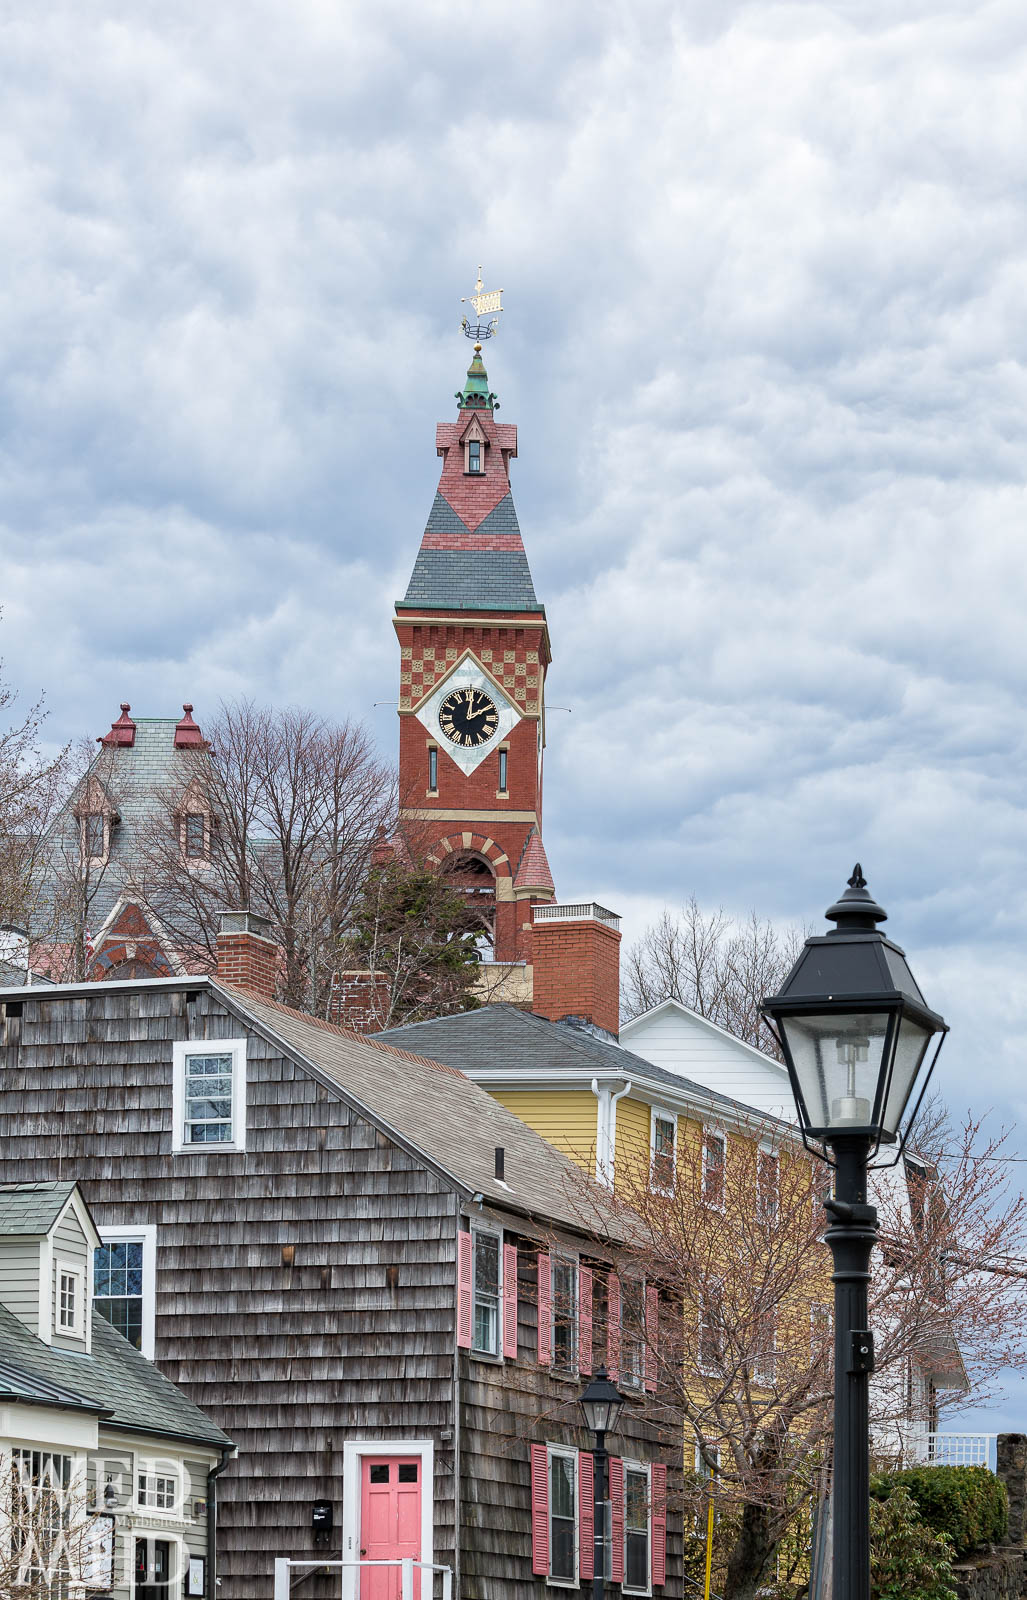 Abbot Hall towers over houses along Washington Street including one with pink shutters